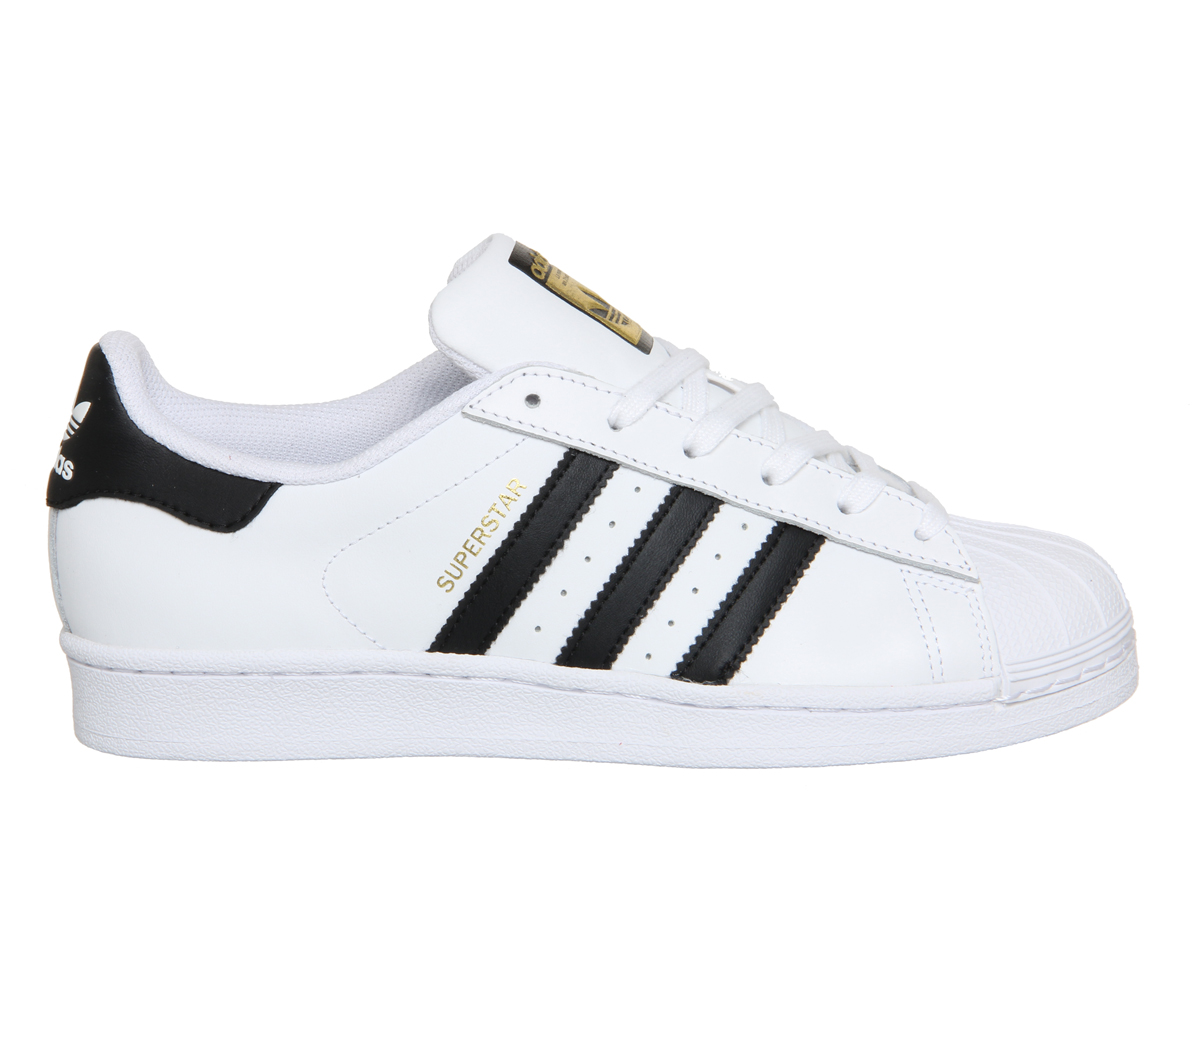 womens adidas superstar white black foundation trainers shoes. Black Bedroom Furniture Sets. Home Design Ideas